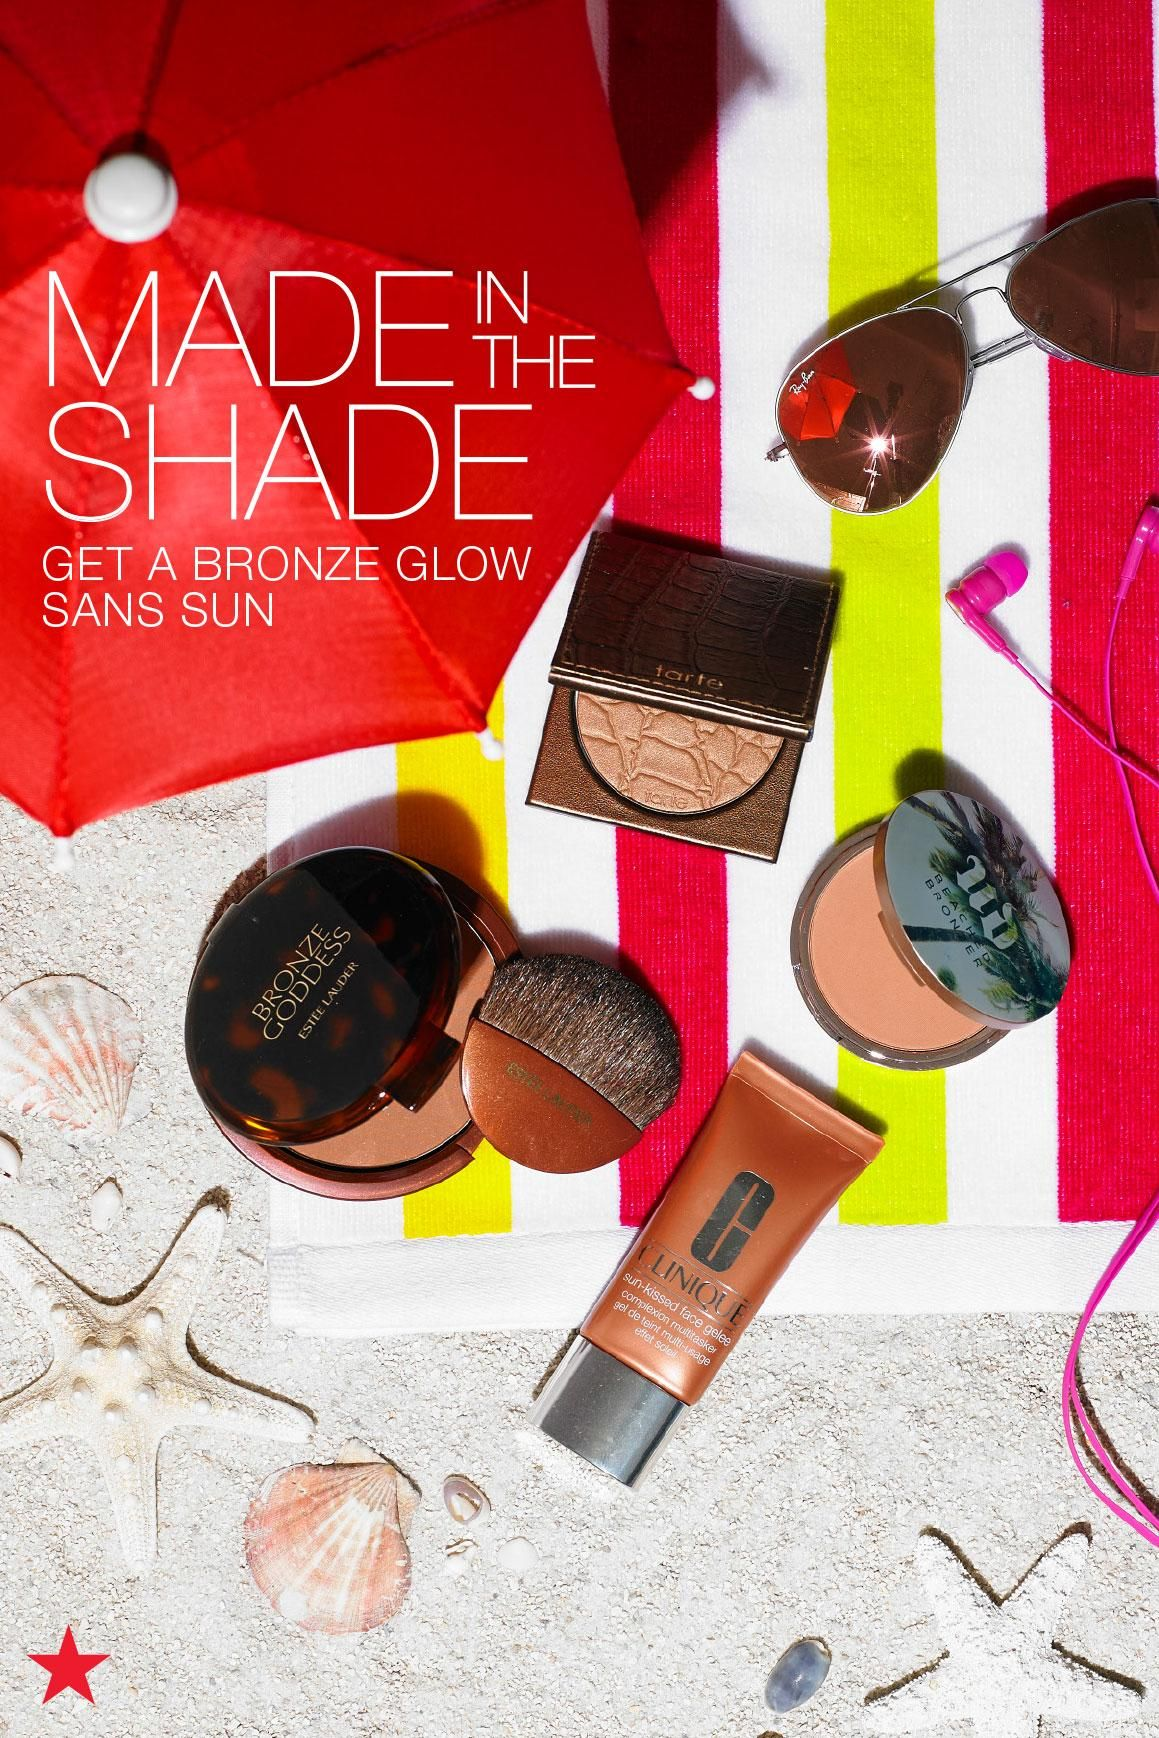 Enhance that summer glow with your favorite